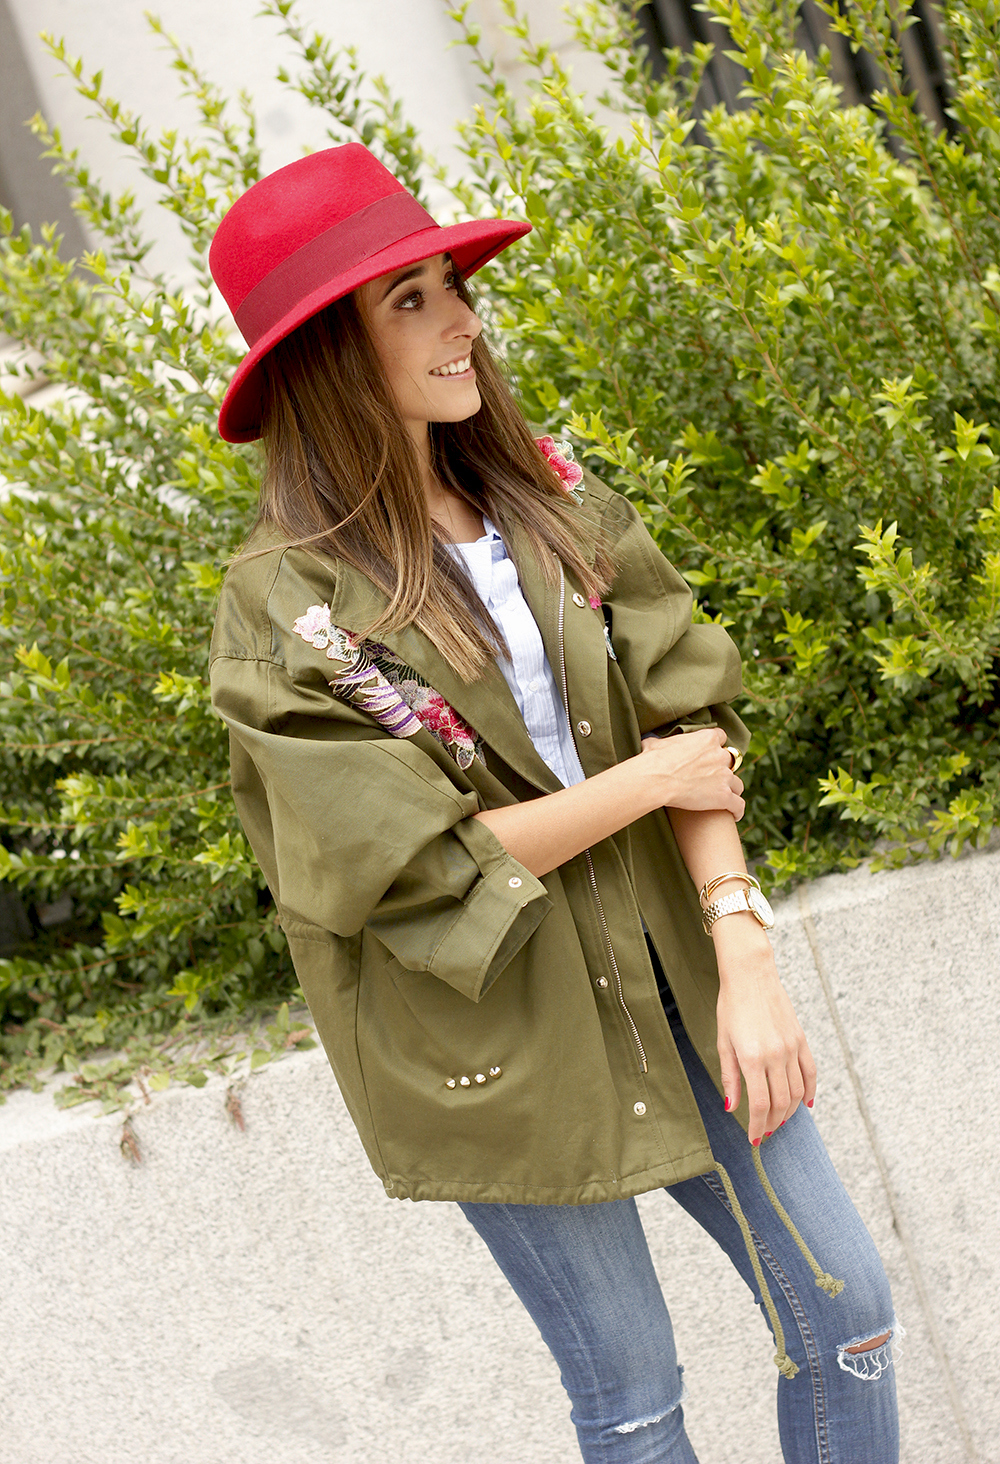 Green Parka Jeans nude heels red uterqüe hat style fashion09